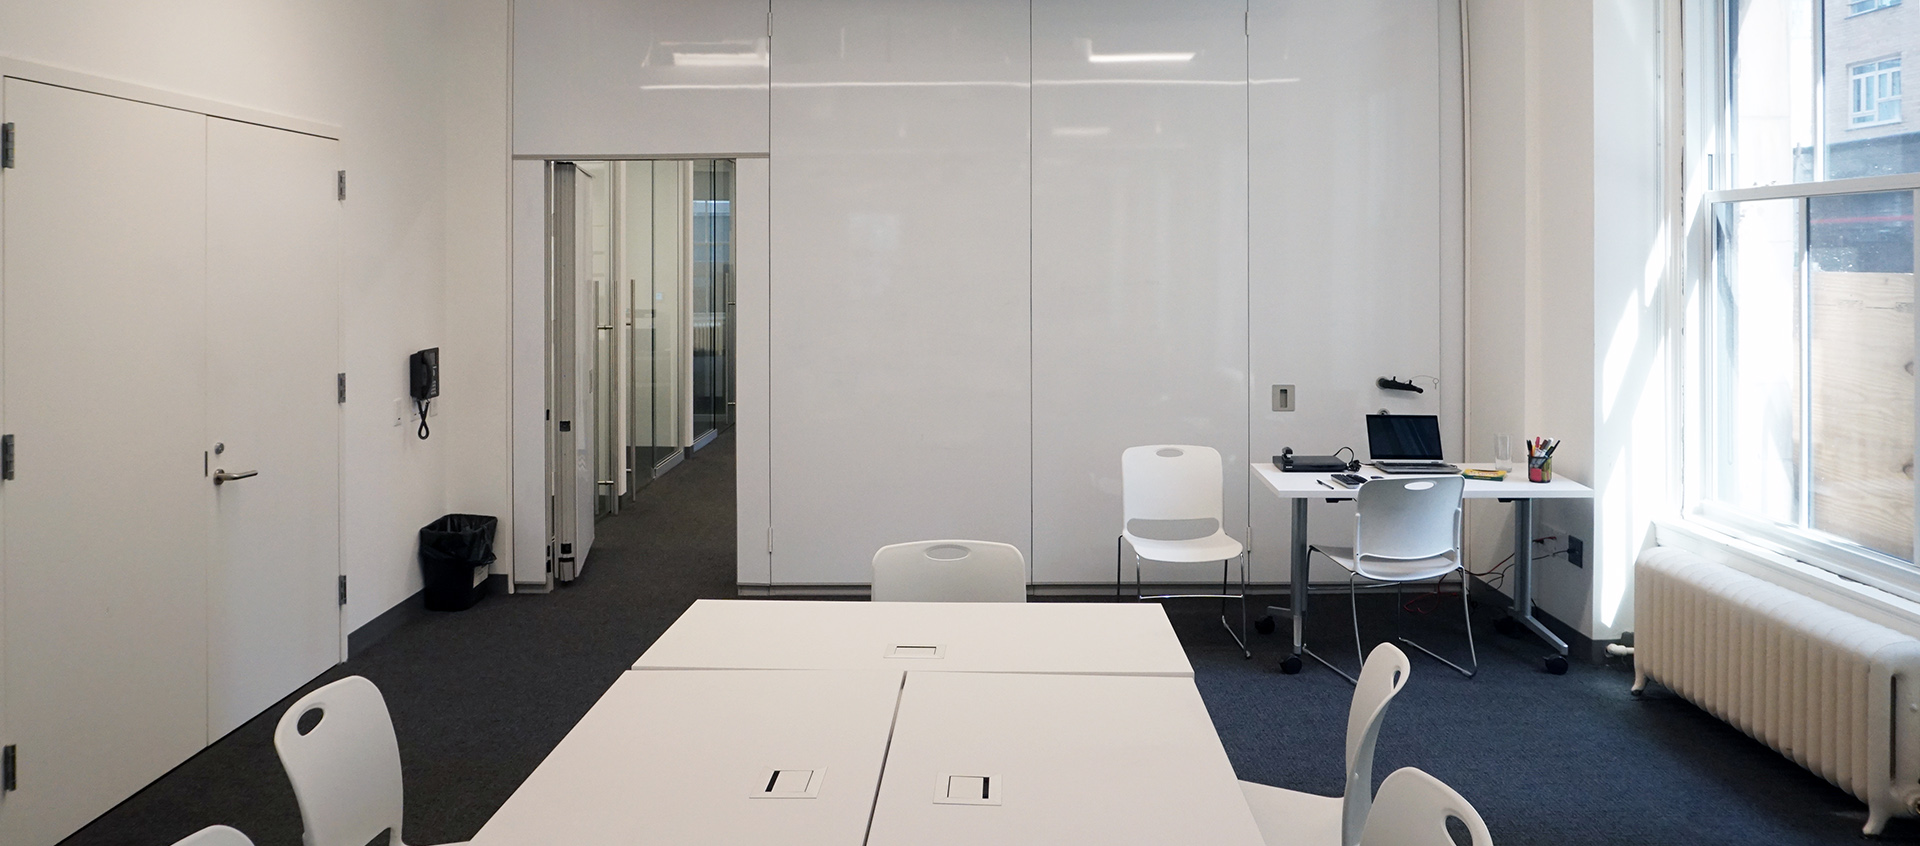 Encore Acoustic walls with floor to ceiling markerboard